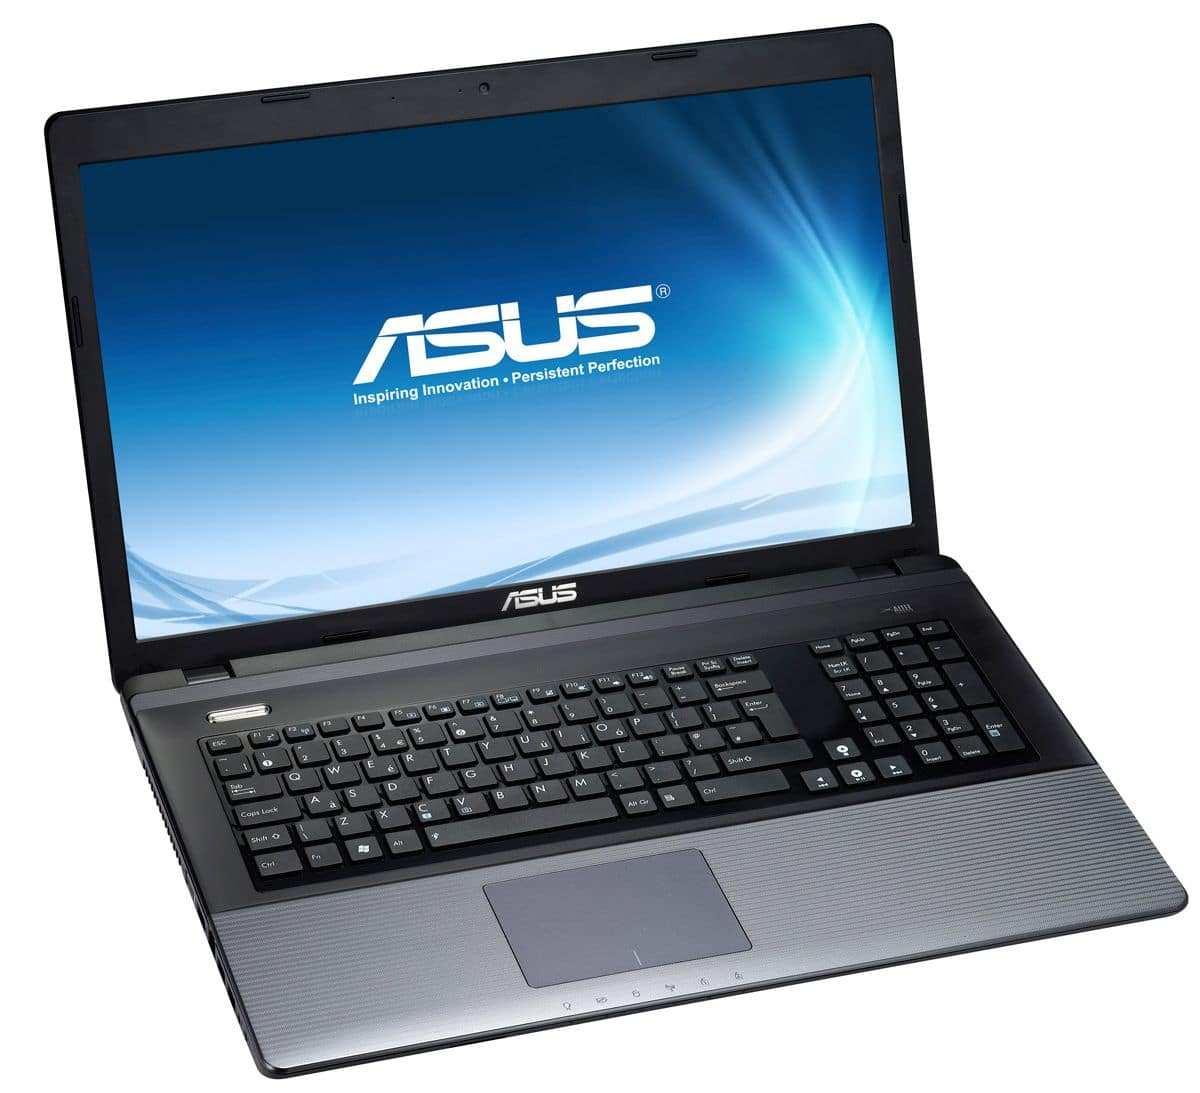 "Asus R900VB-YZ084H à 599€, 18.4"" Full HD avec Core i5, Geforce 740M, 1000 Go 7200tr"